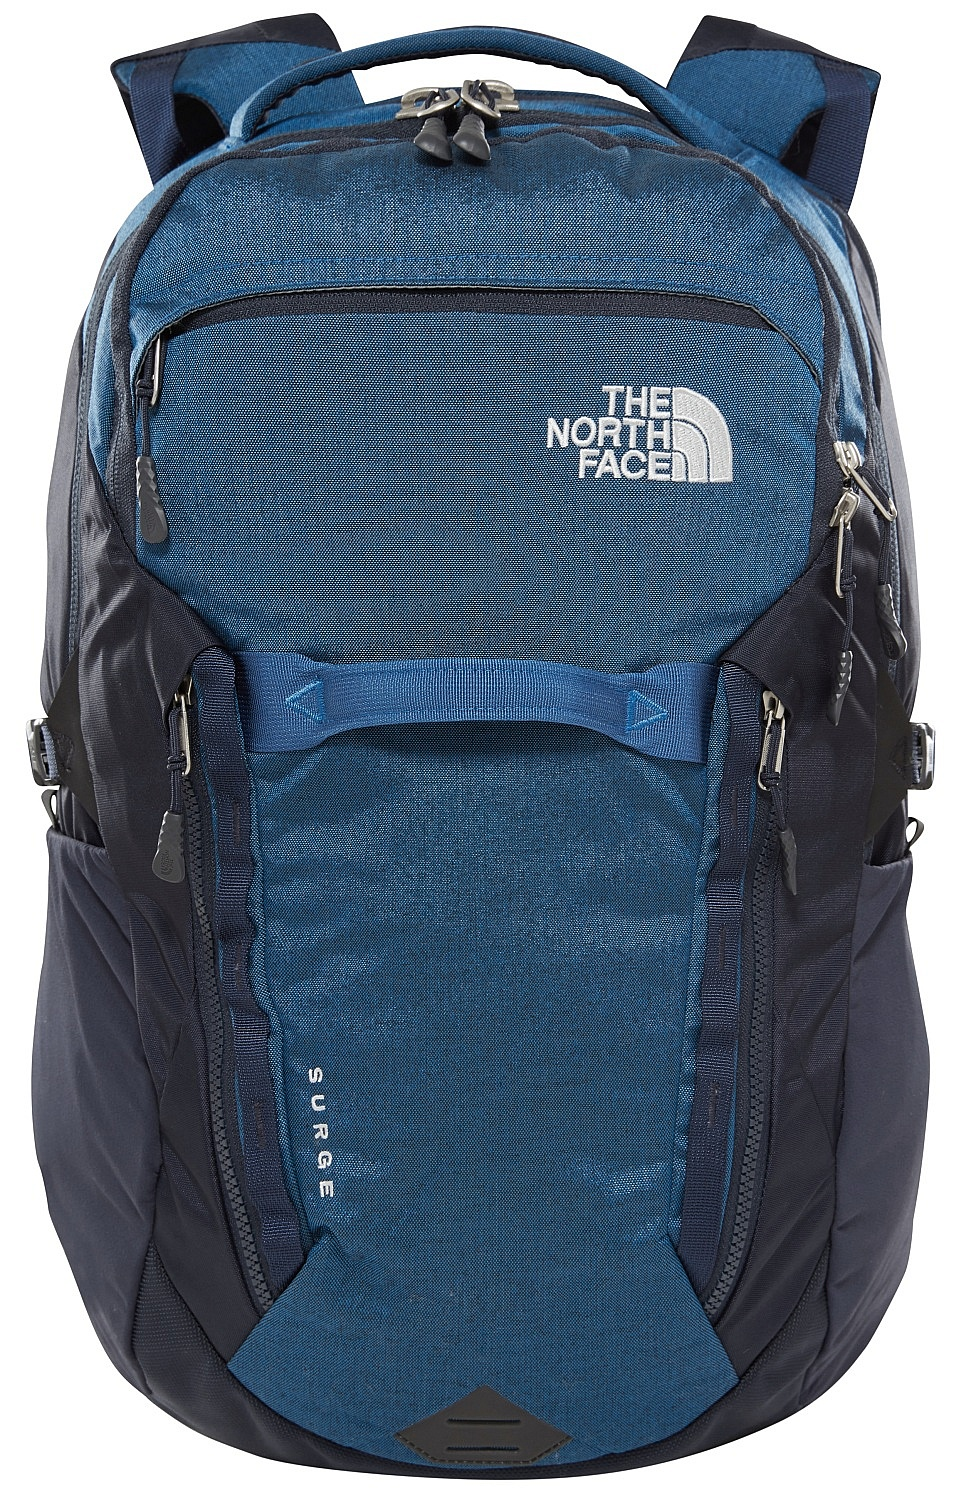 663930786845 backpack The North Face Surge 31 - Dish Blue Light Heather Urban Navy -  Snowboard shop